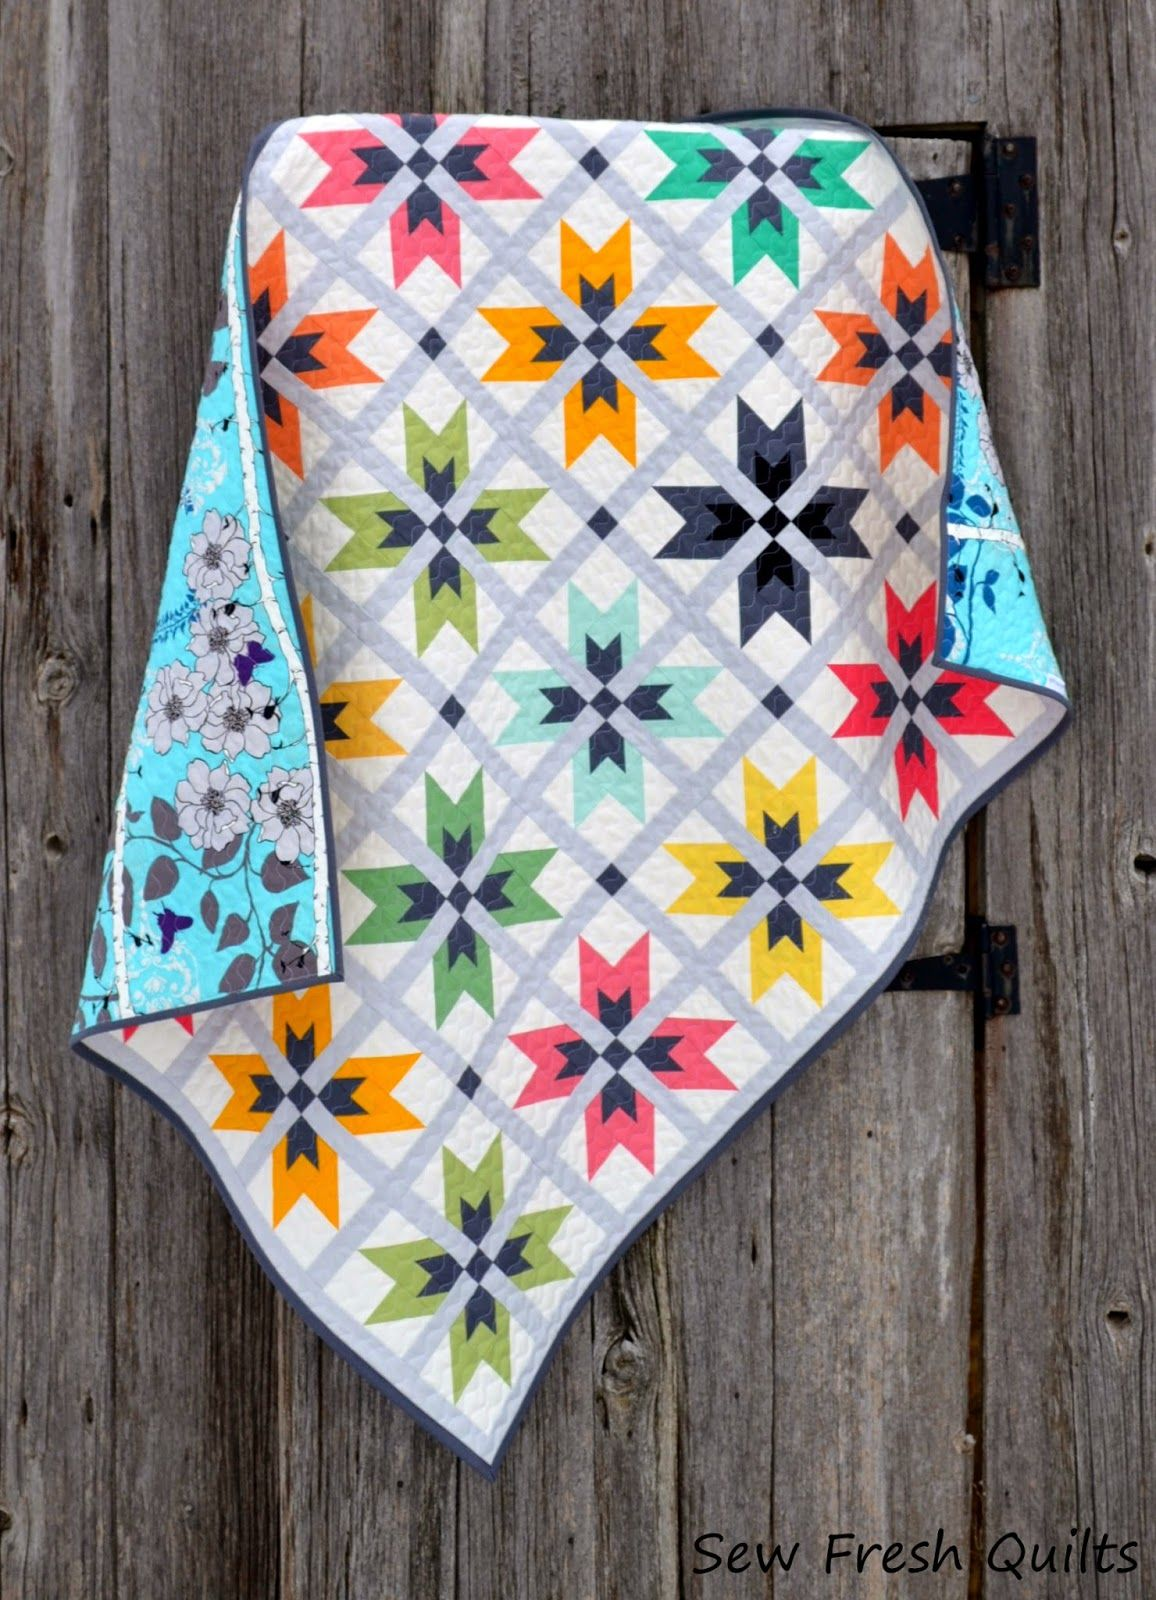 Pattern by Sew Fresh Quilts.. link to her shop in blog.  LOVE her patterns and use of color!